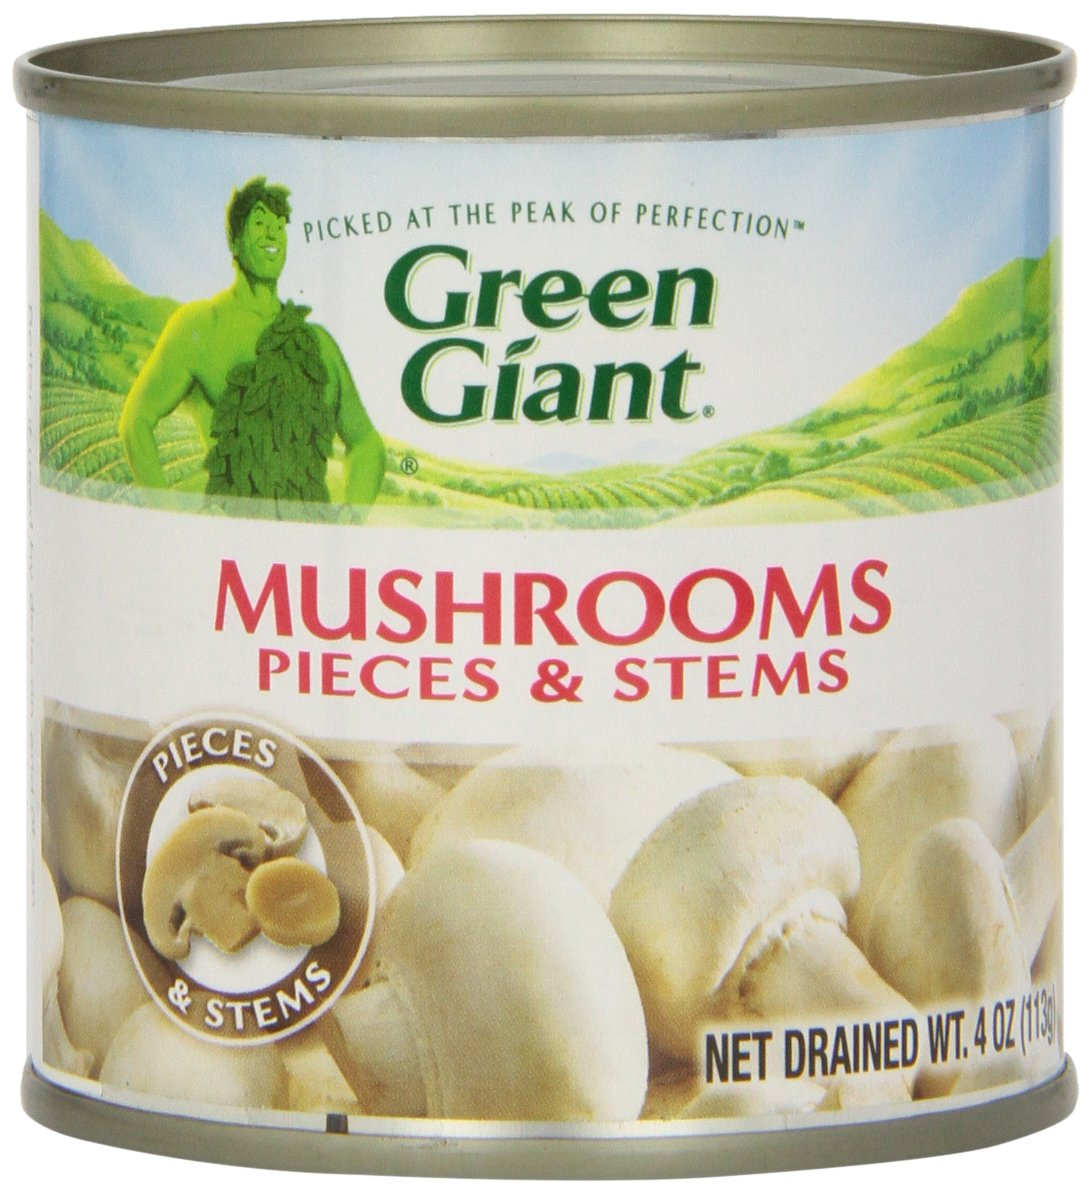 Green Giant Mushrooms - Pieces & Stems - 4 oz by Green Giant